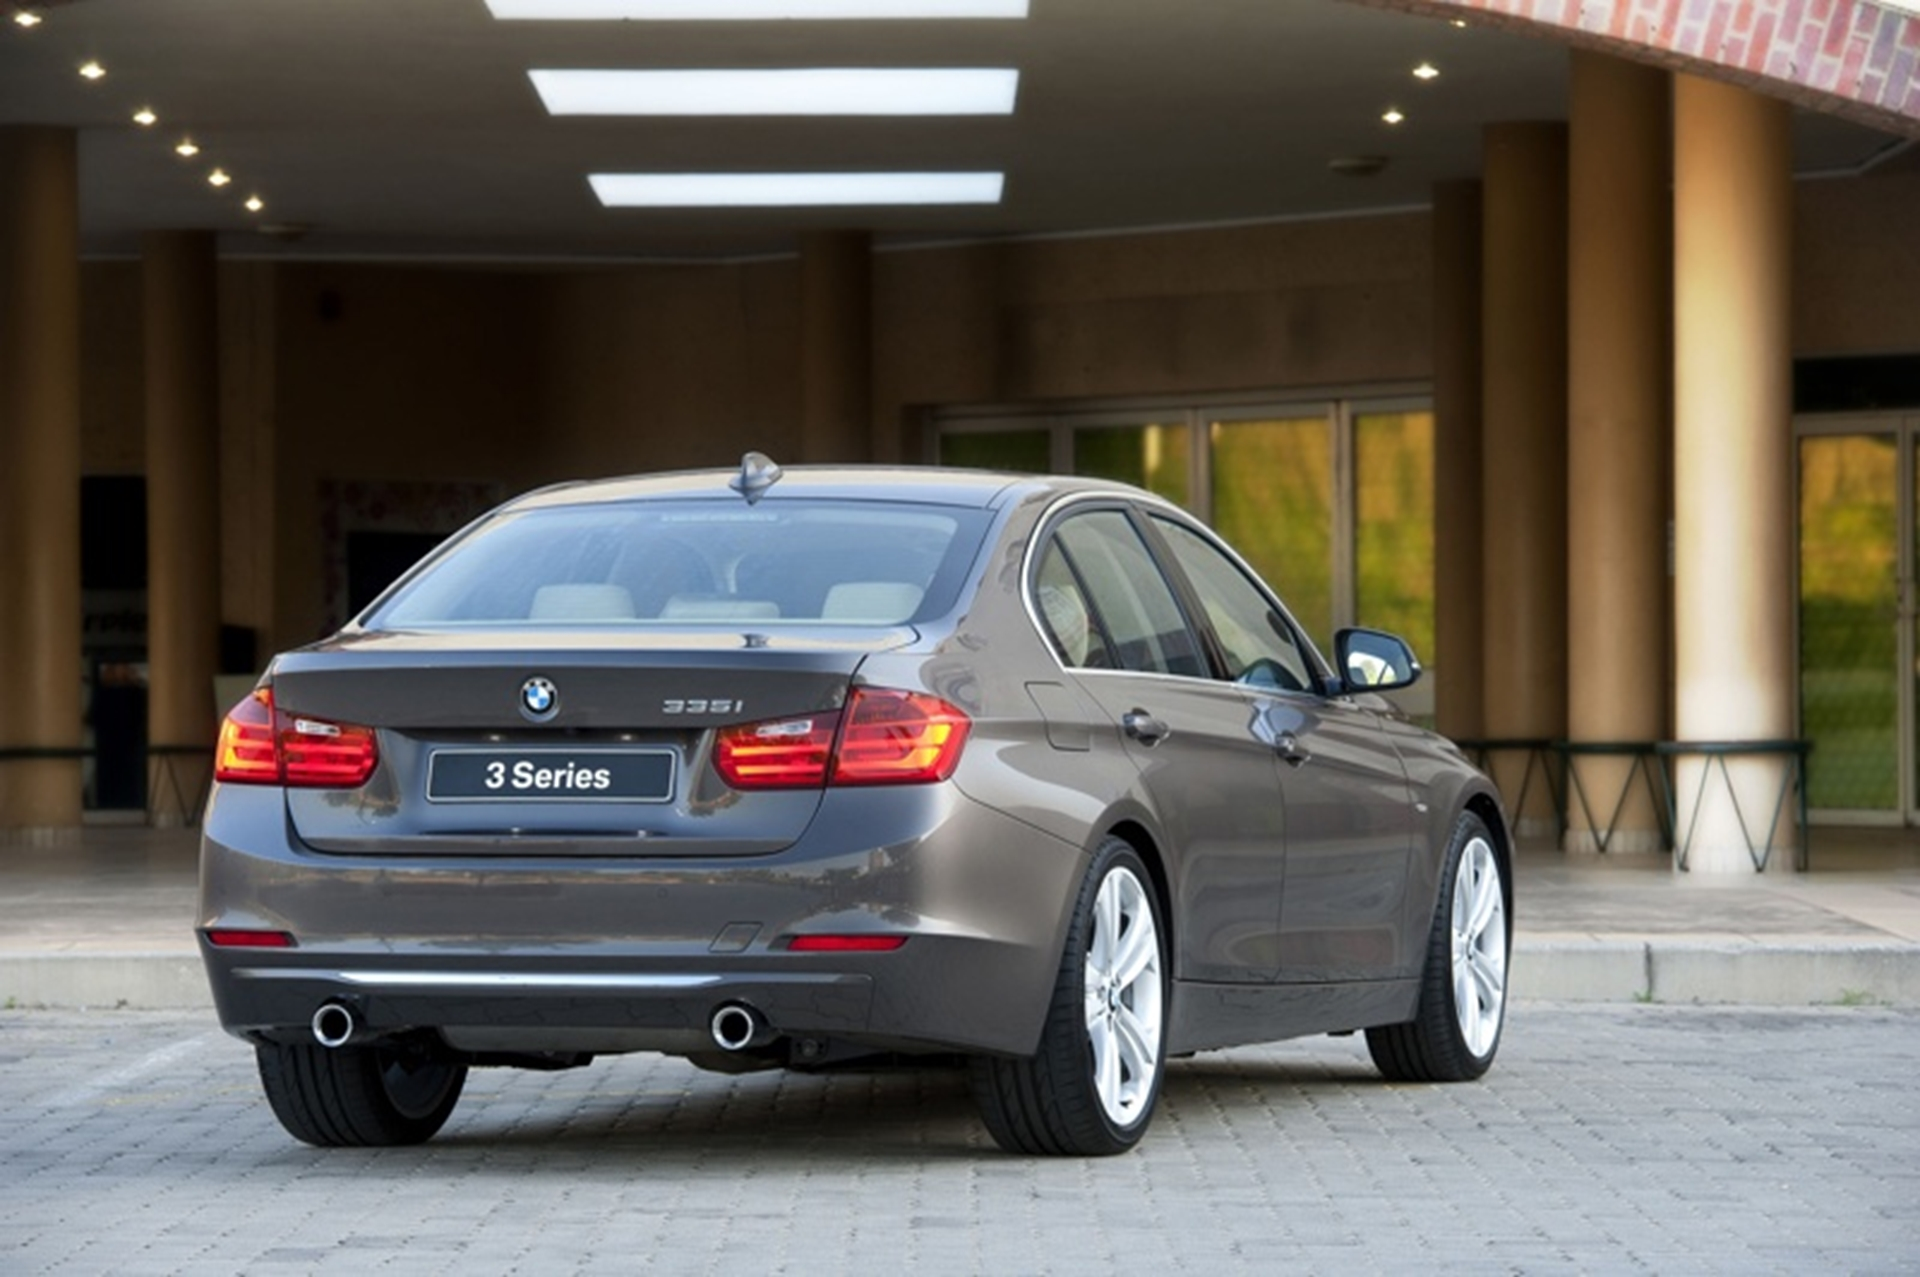 BMW 3 Series rear